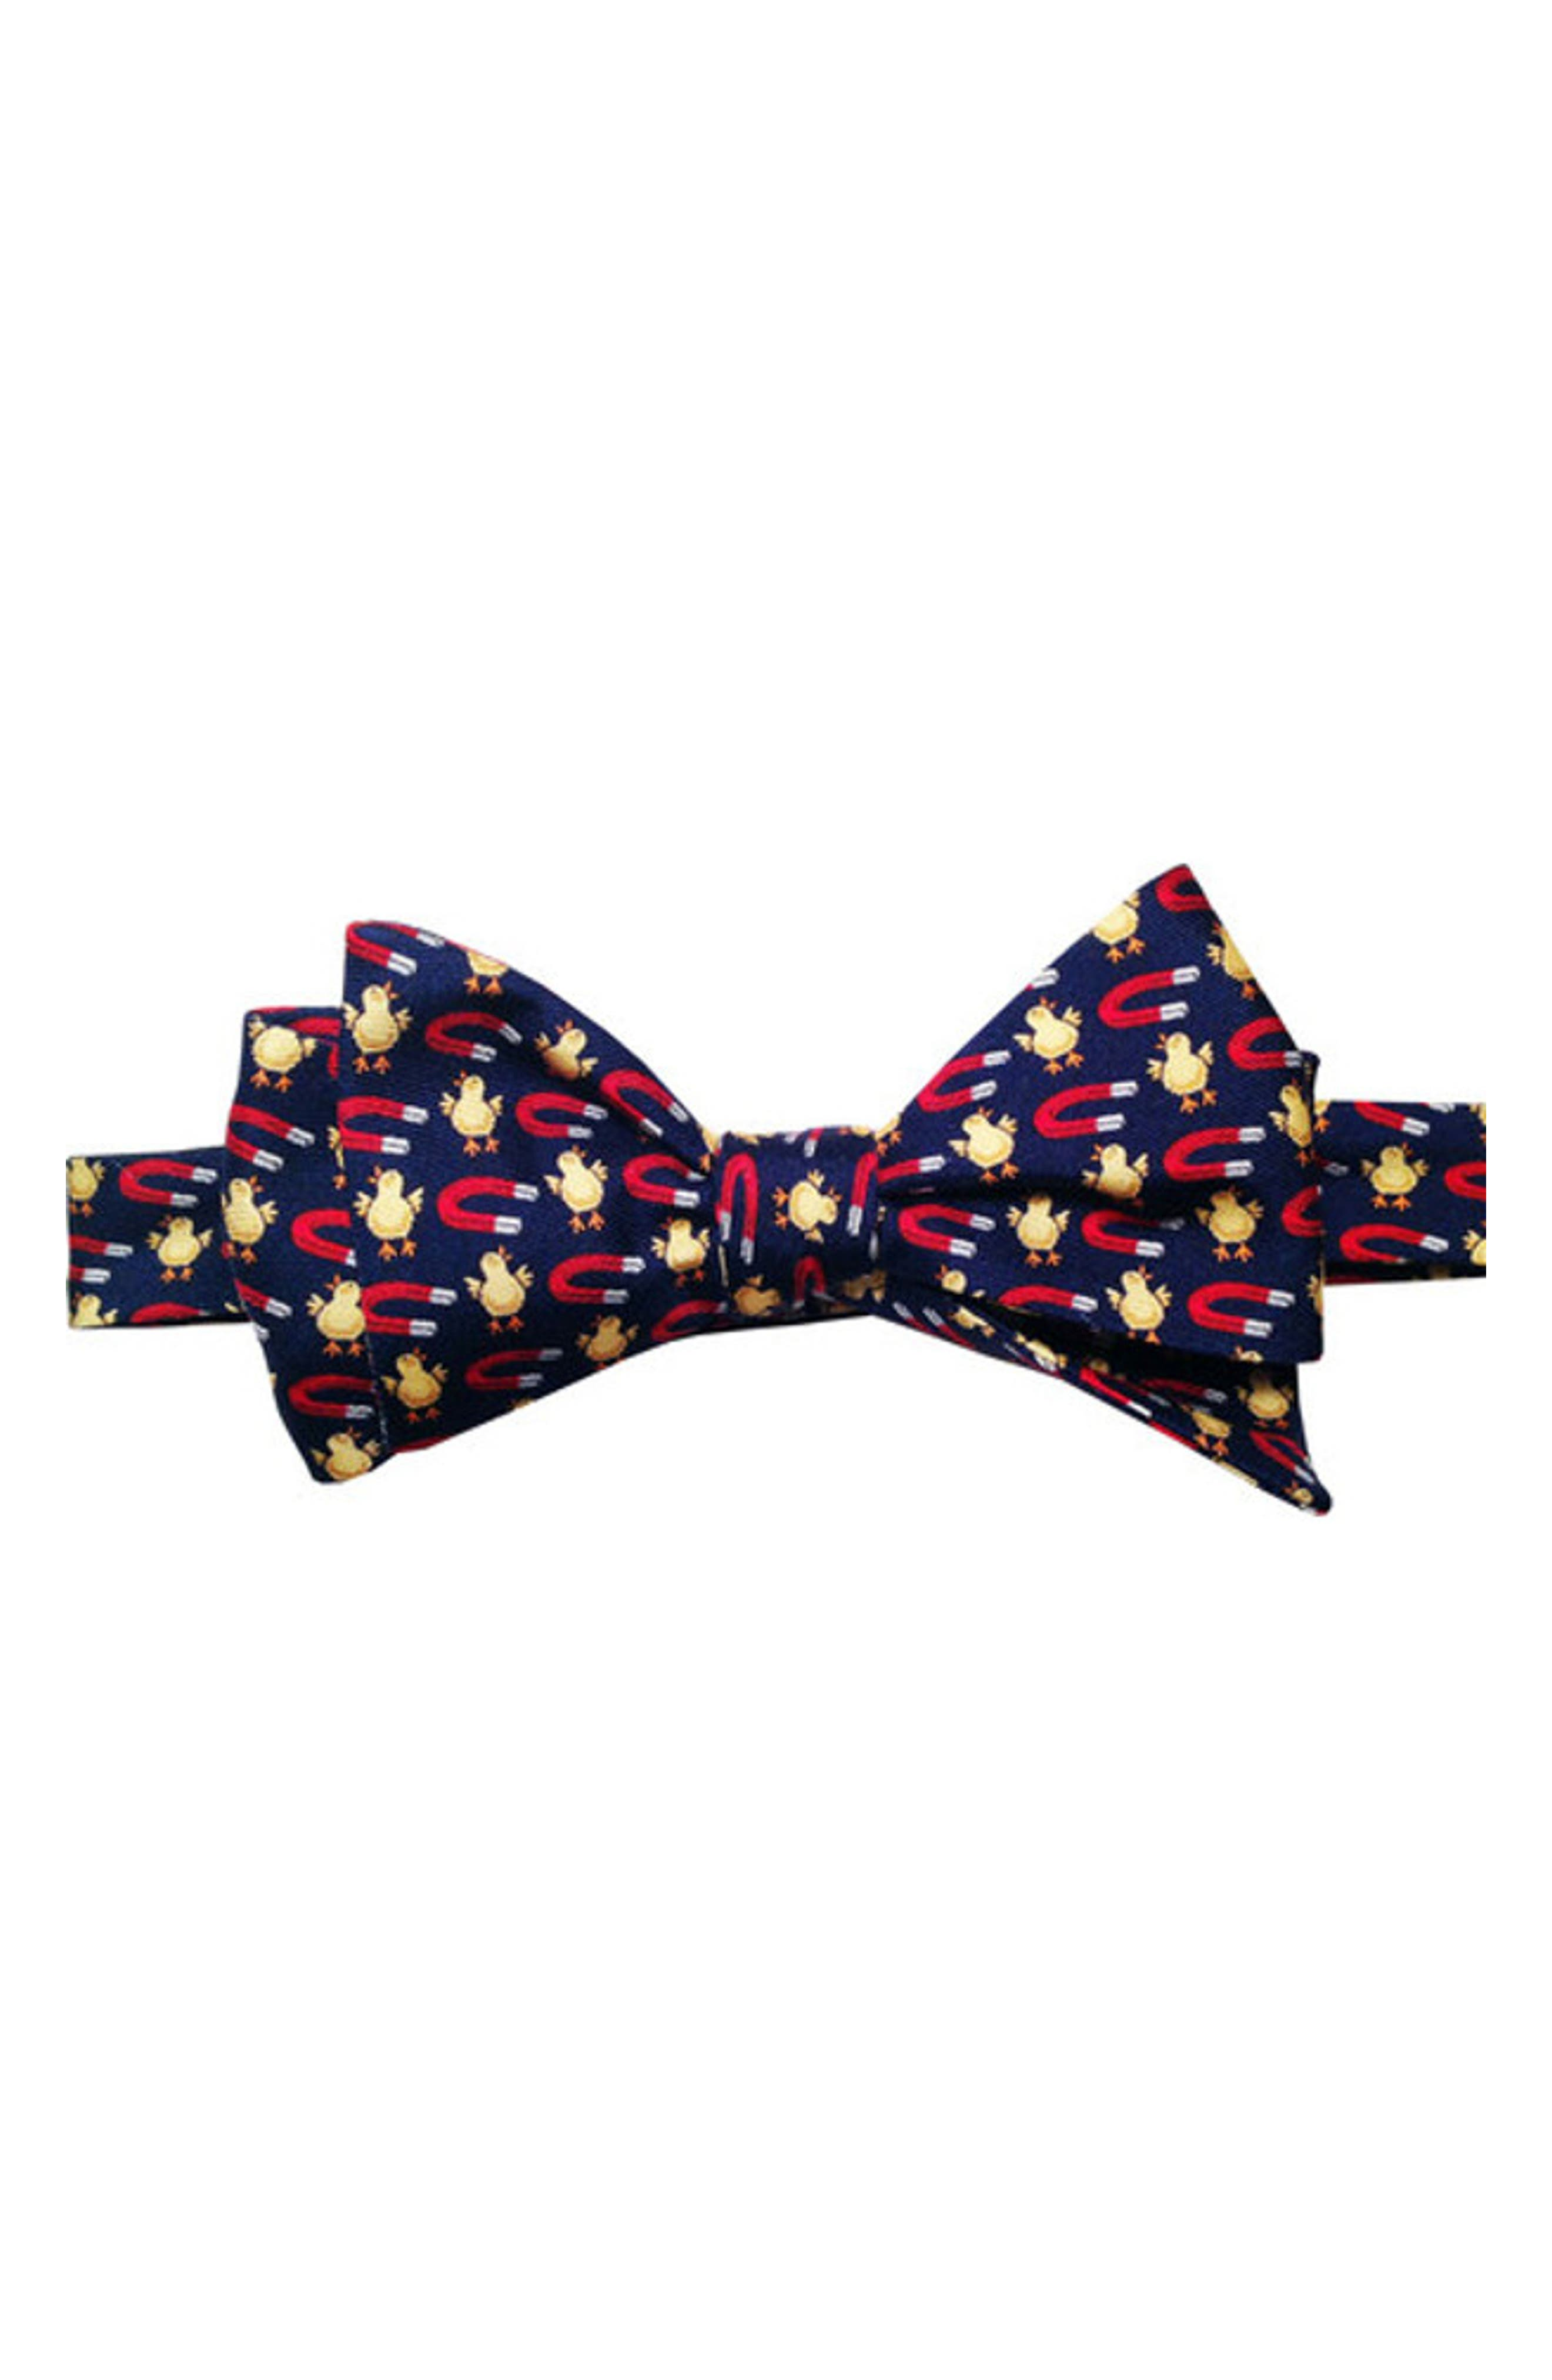 Chick Magnet Silk Bow Tie,                         Main,                         color, 410